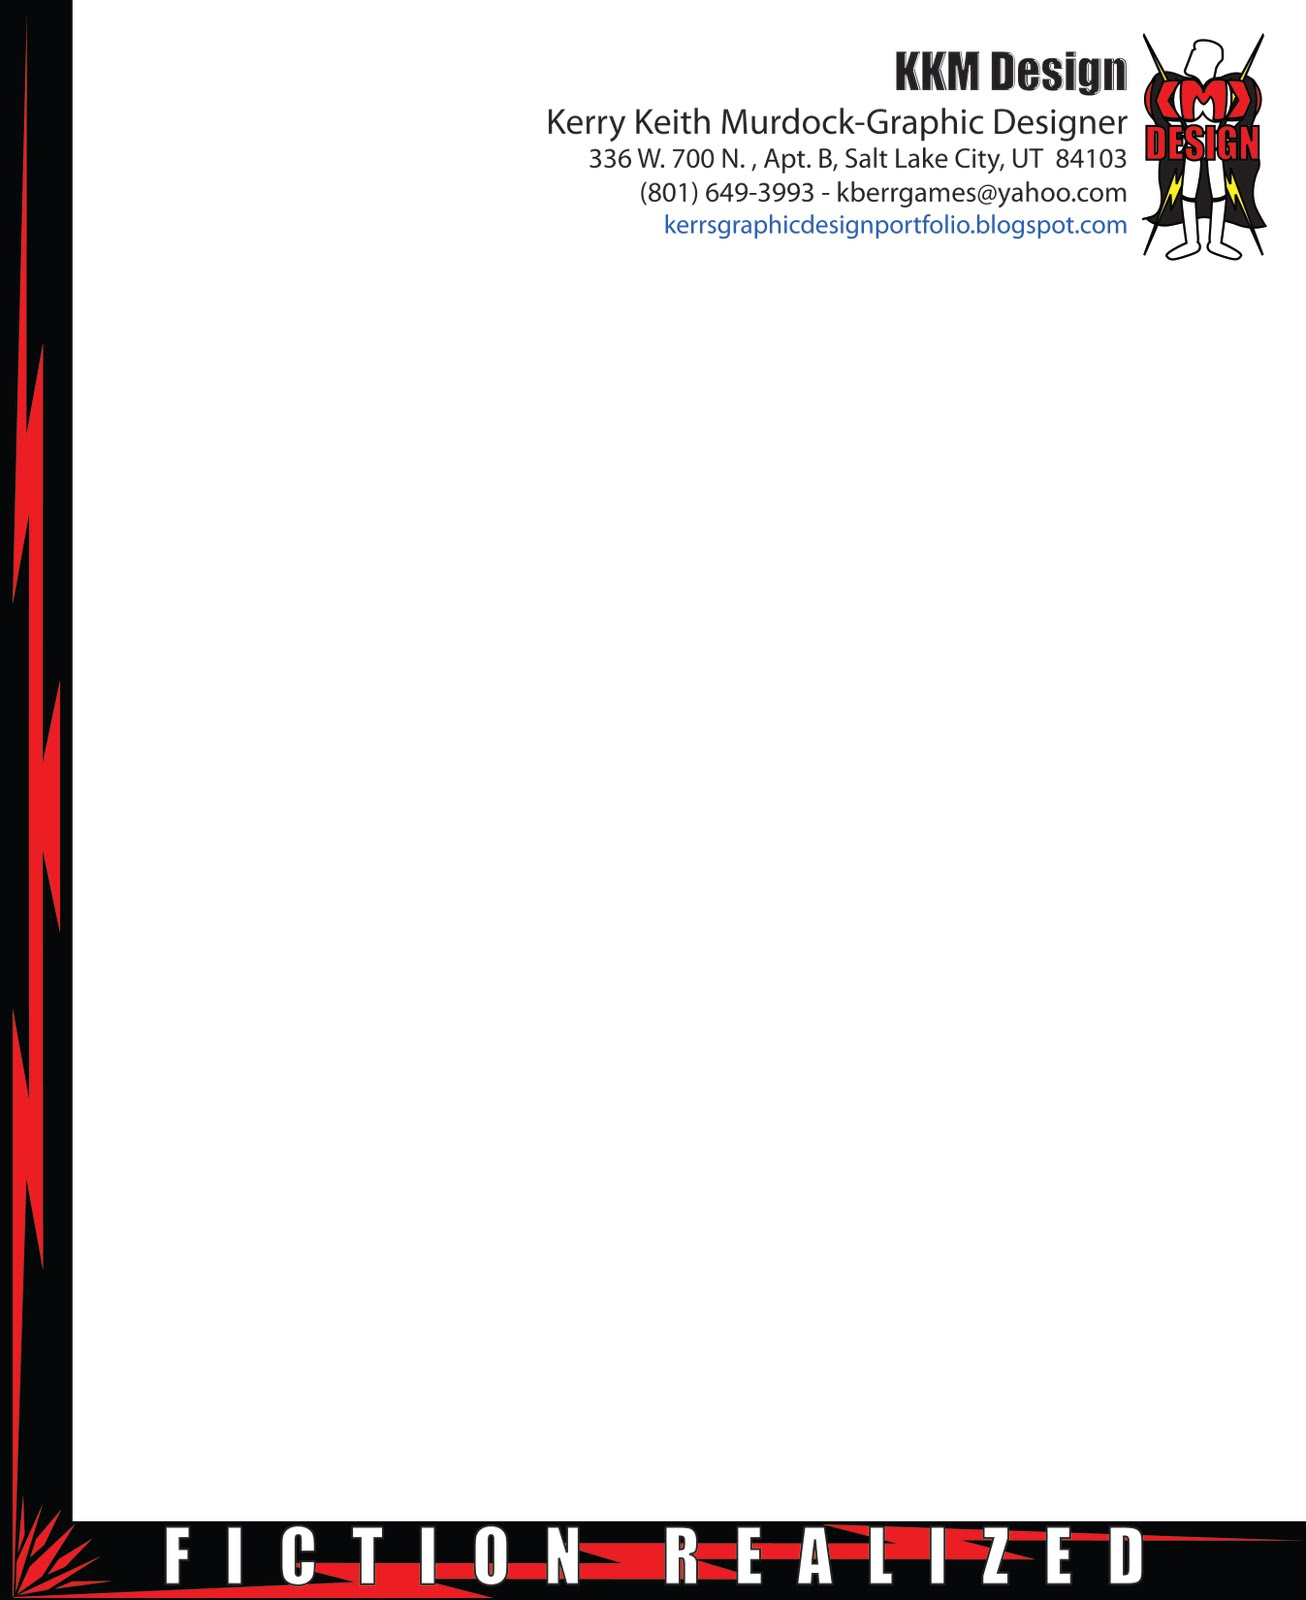 graphic design experience kkm game character design letterhead